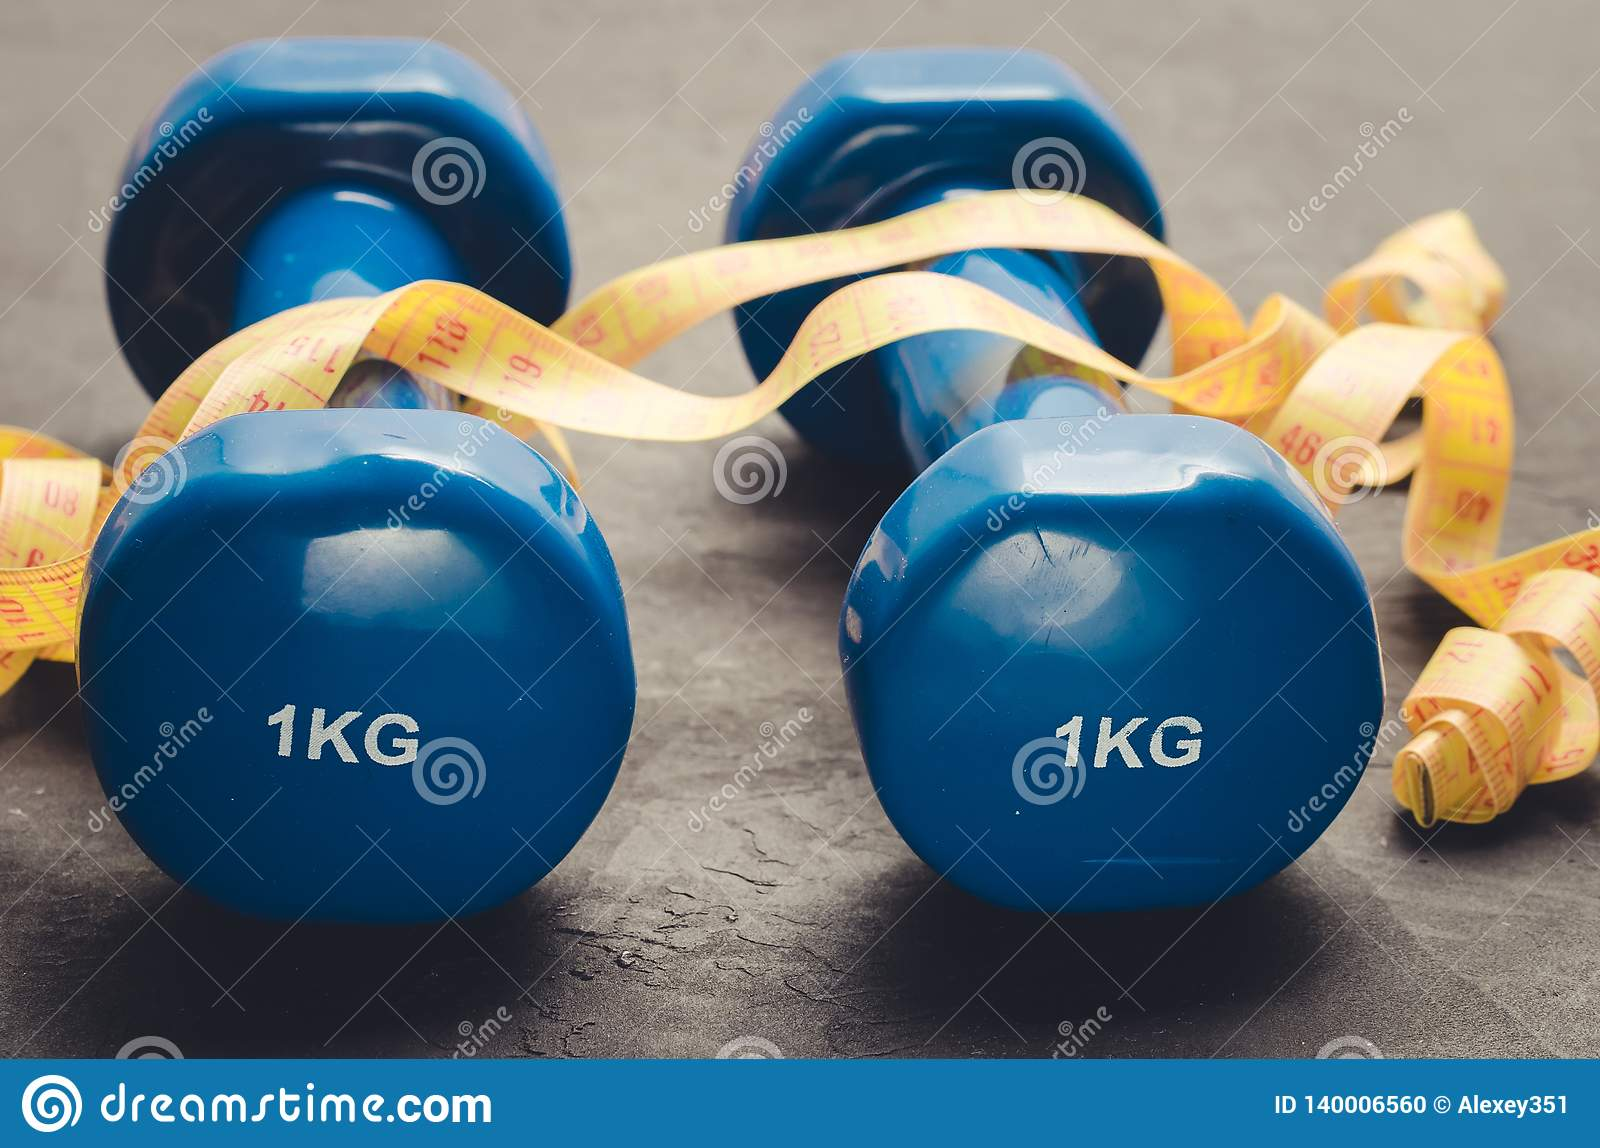 Sports equipment on a dark background/ Sports equipment with Blue dumbbells and yellow measuring tape. Selective focus